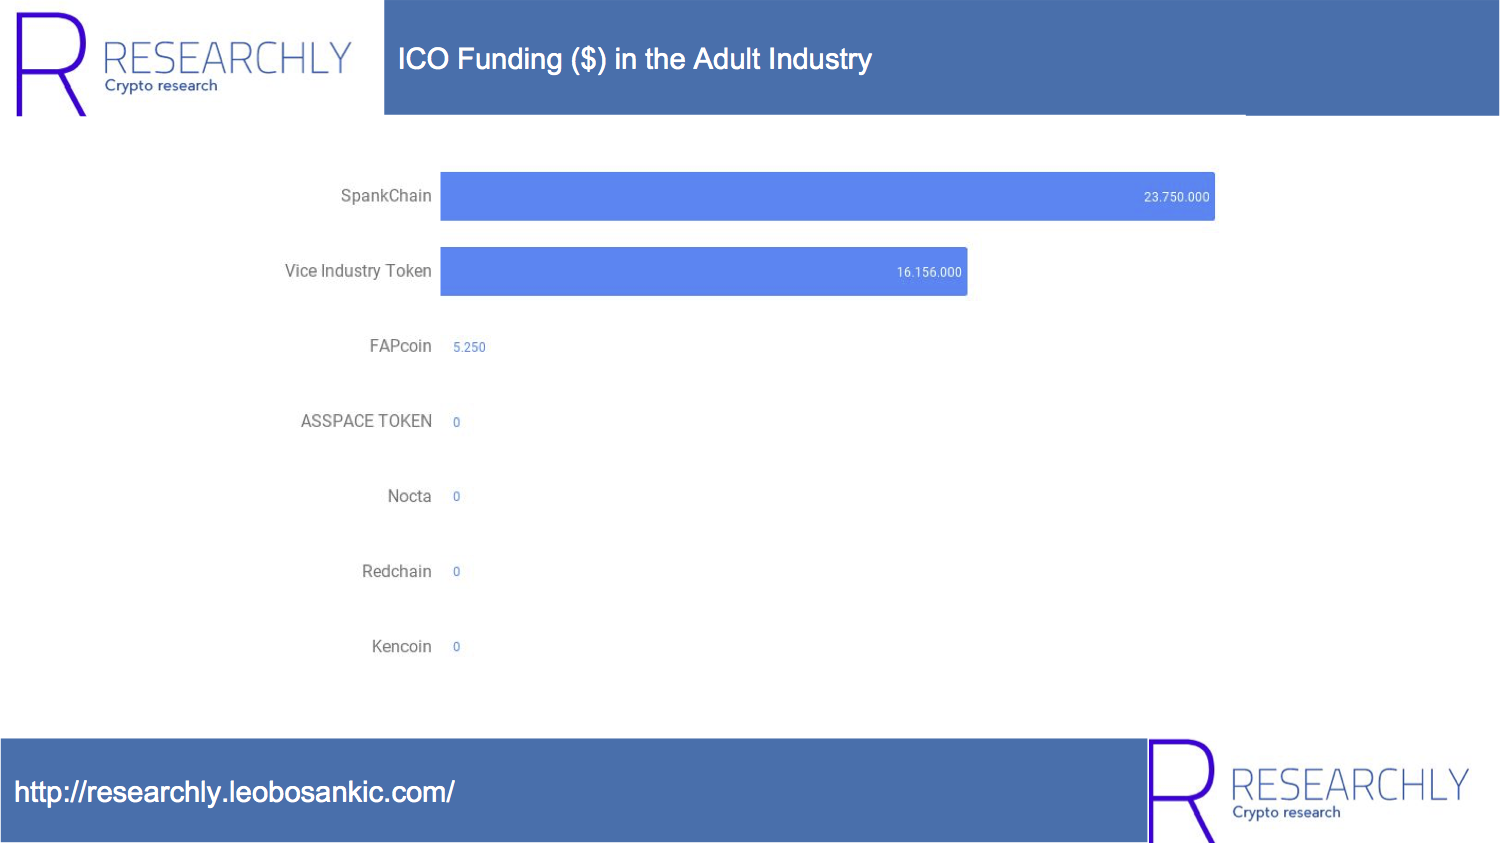 ICO Funding ($) in the Adult Industry